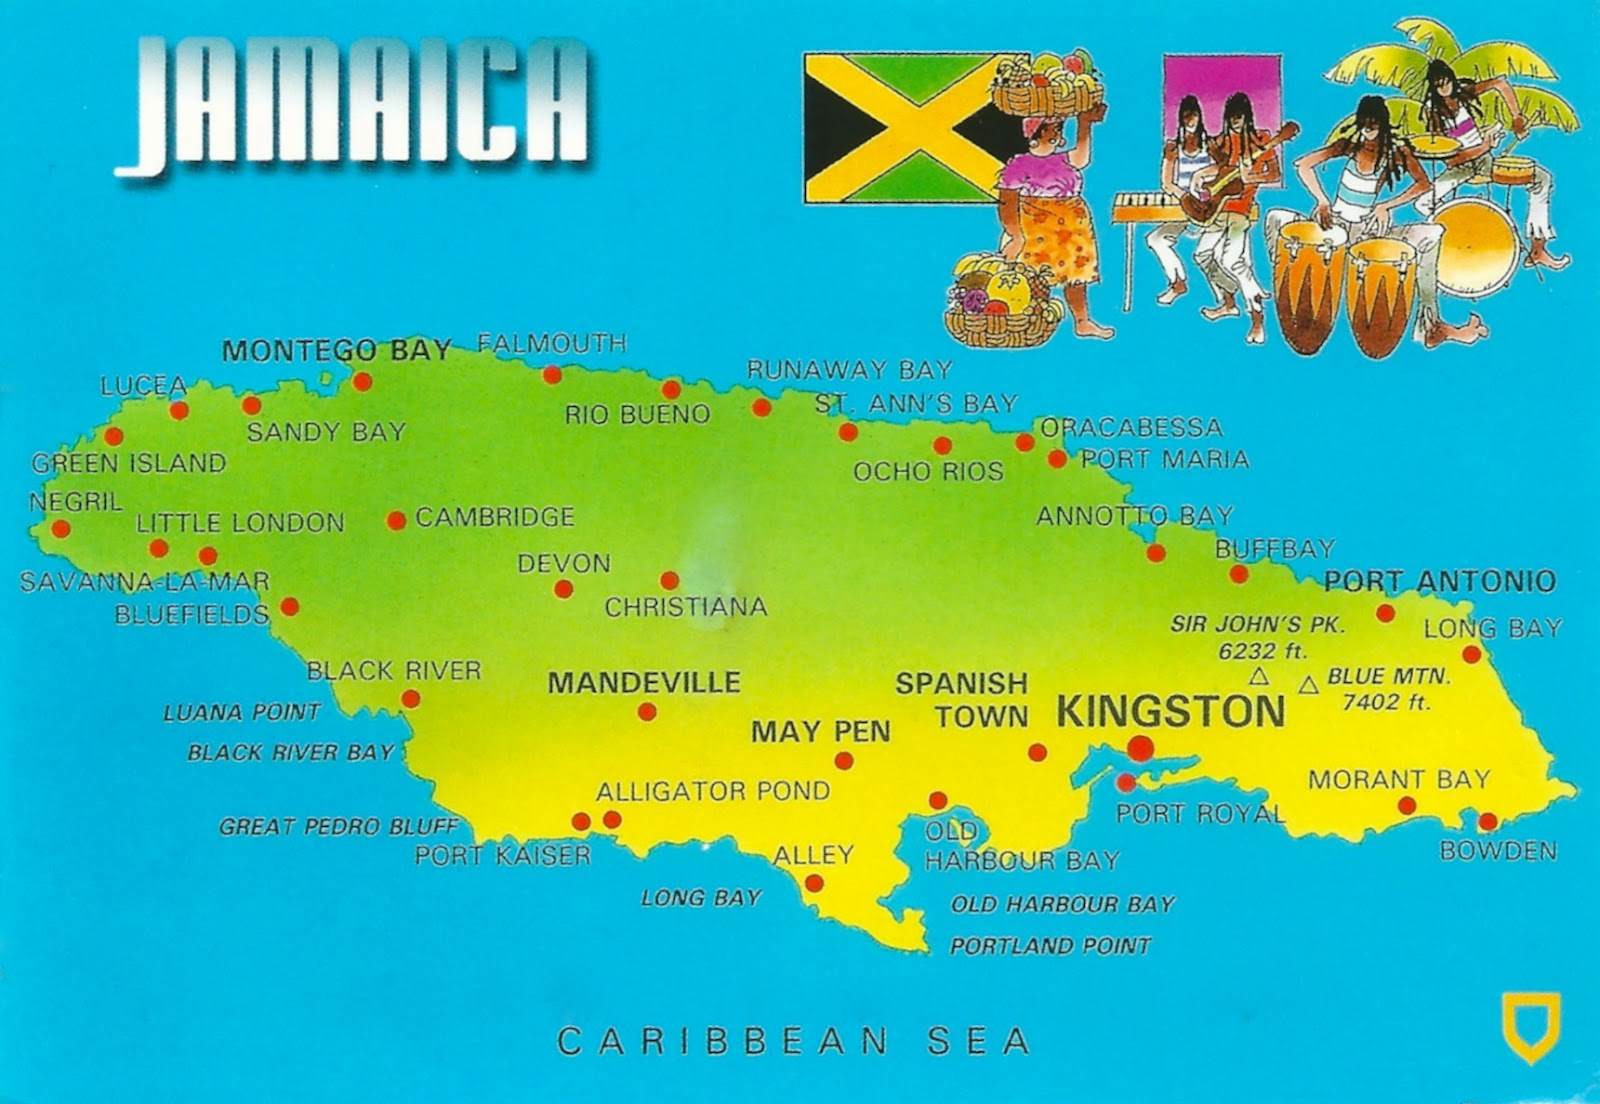 My Favorite Views Jamaica Map